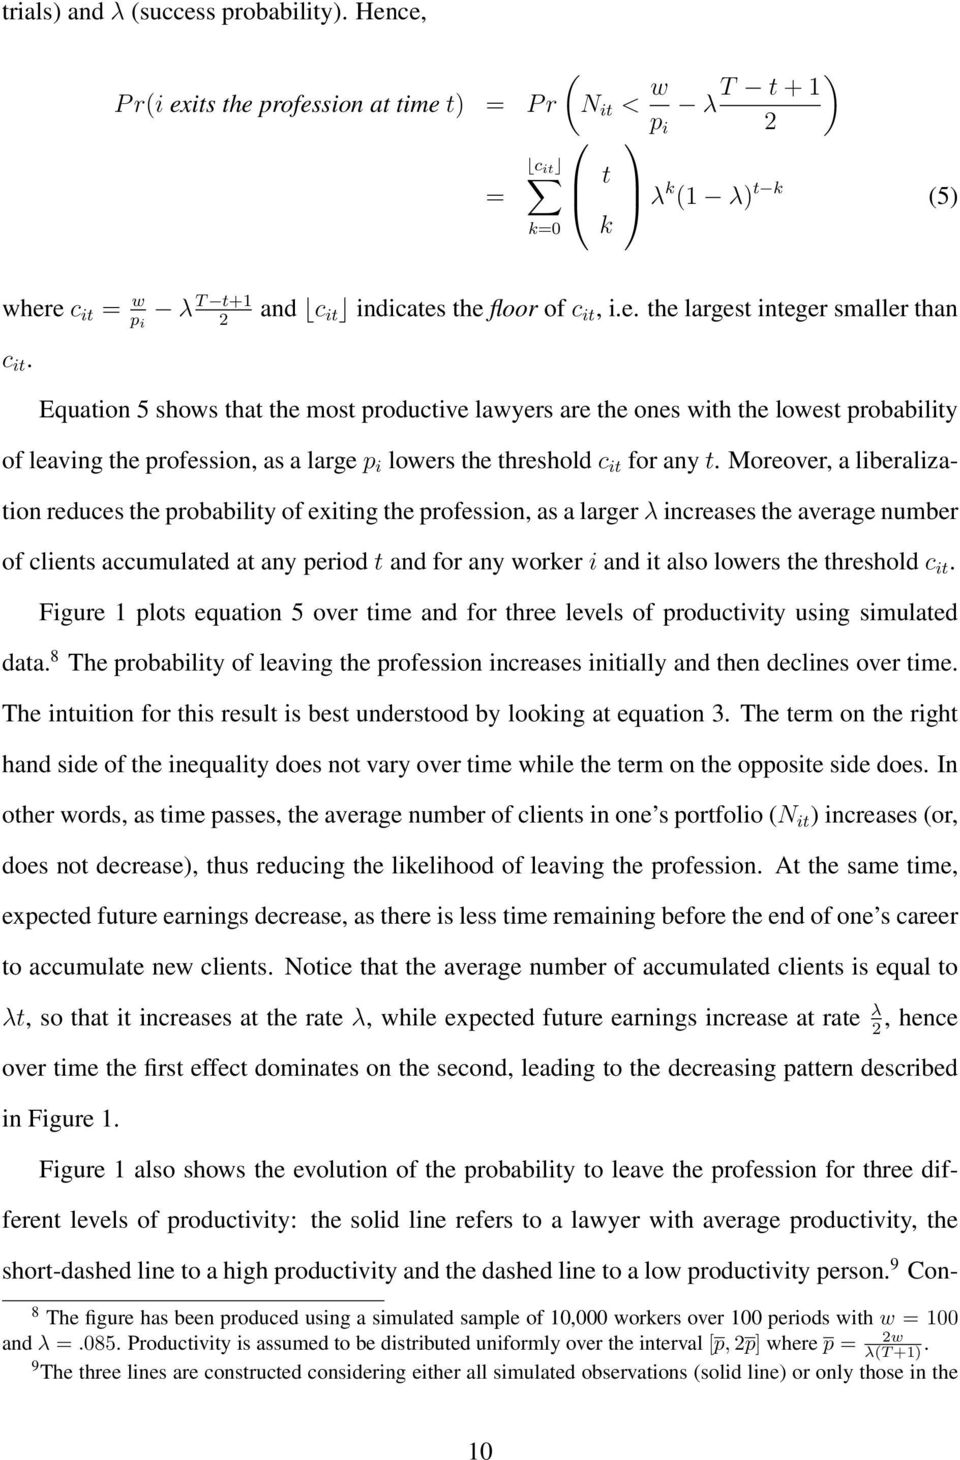 Equation 5 shows that the most productive lawyers are the ones with the lowest probability of leaving the profession, as a large p i lowers the threshold c it for any t.